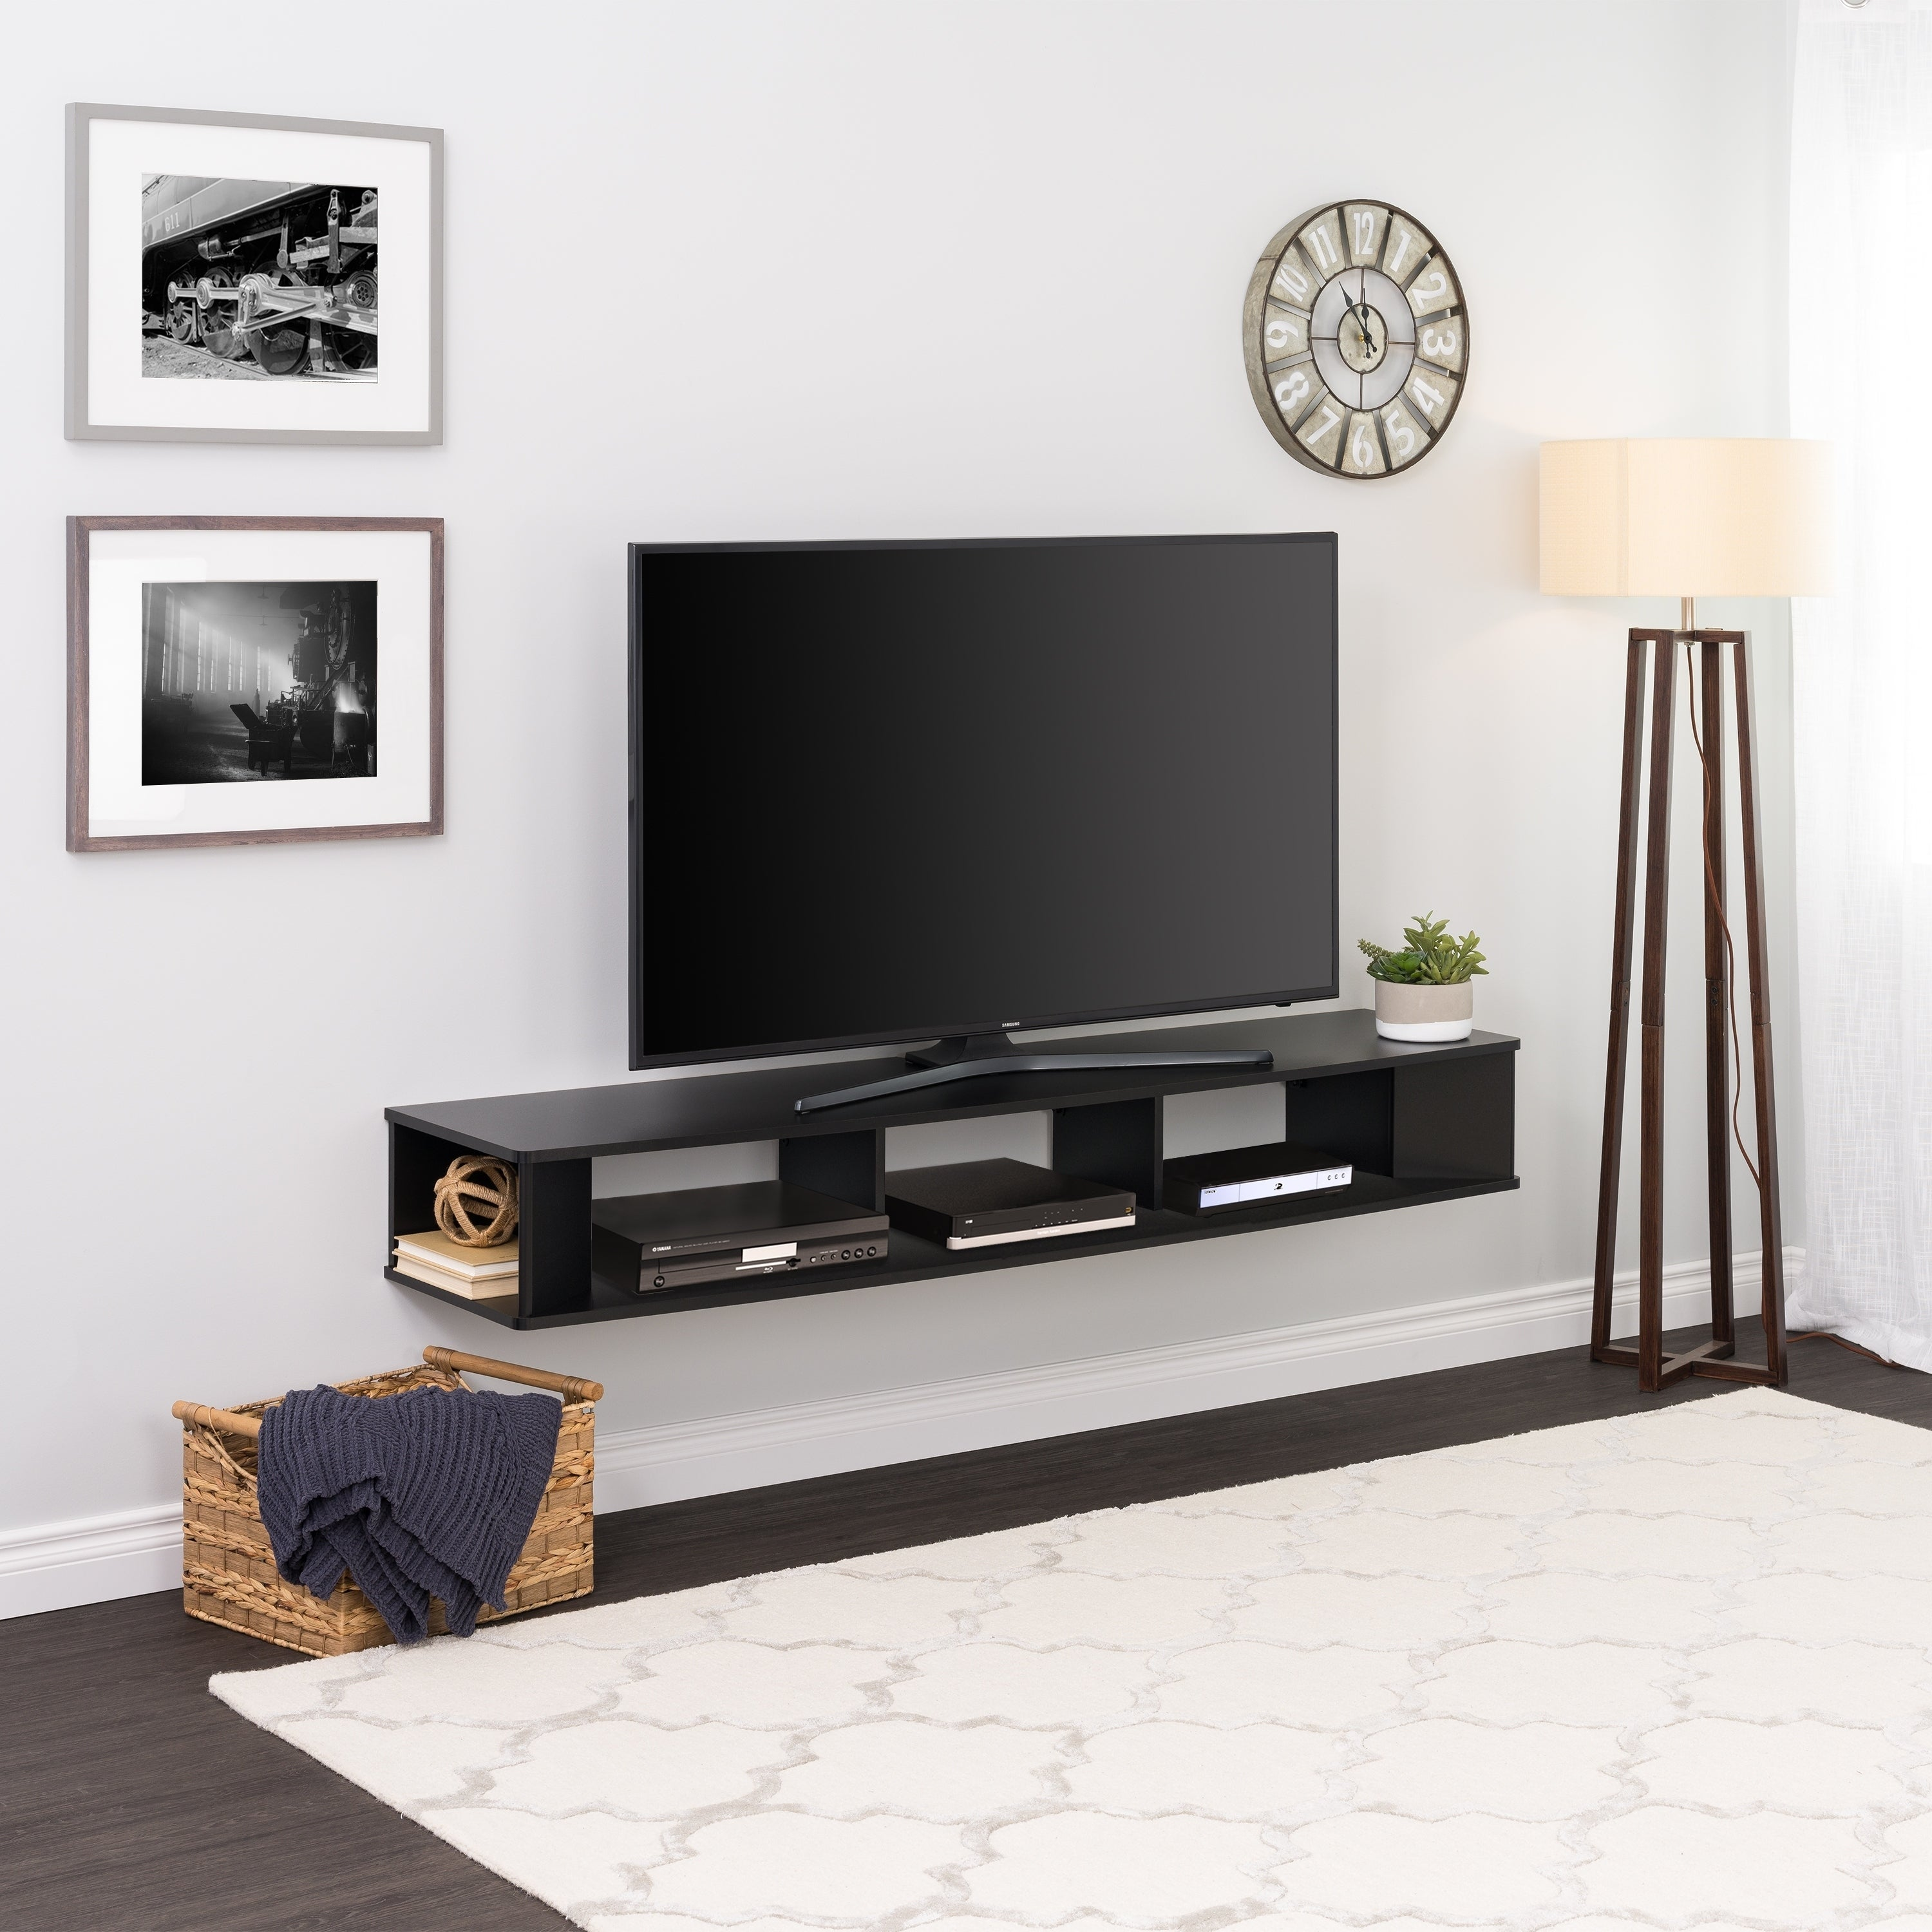 Floating Led Tv Stand Wall Mount Entertainment Console Cabinet Furniture Black